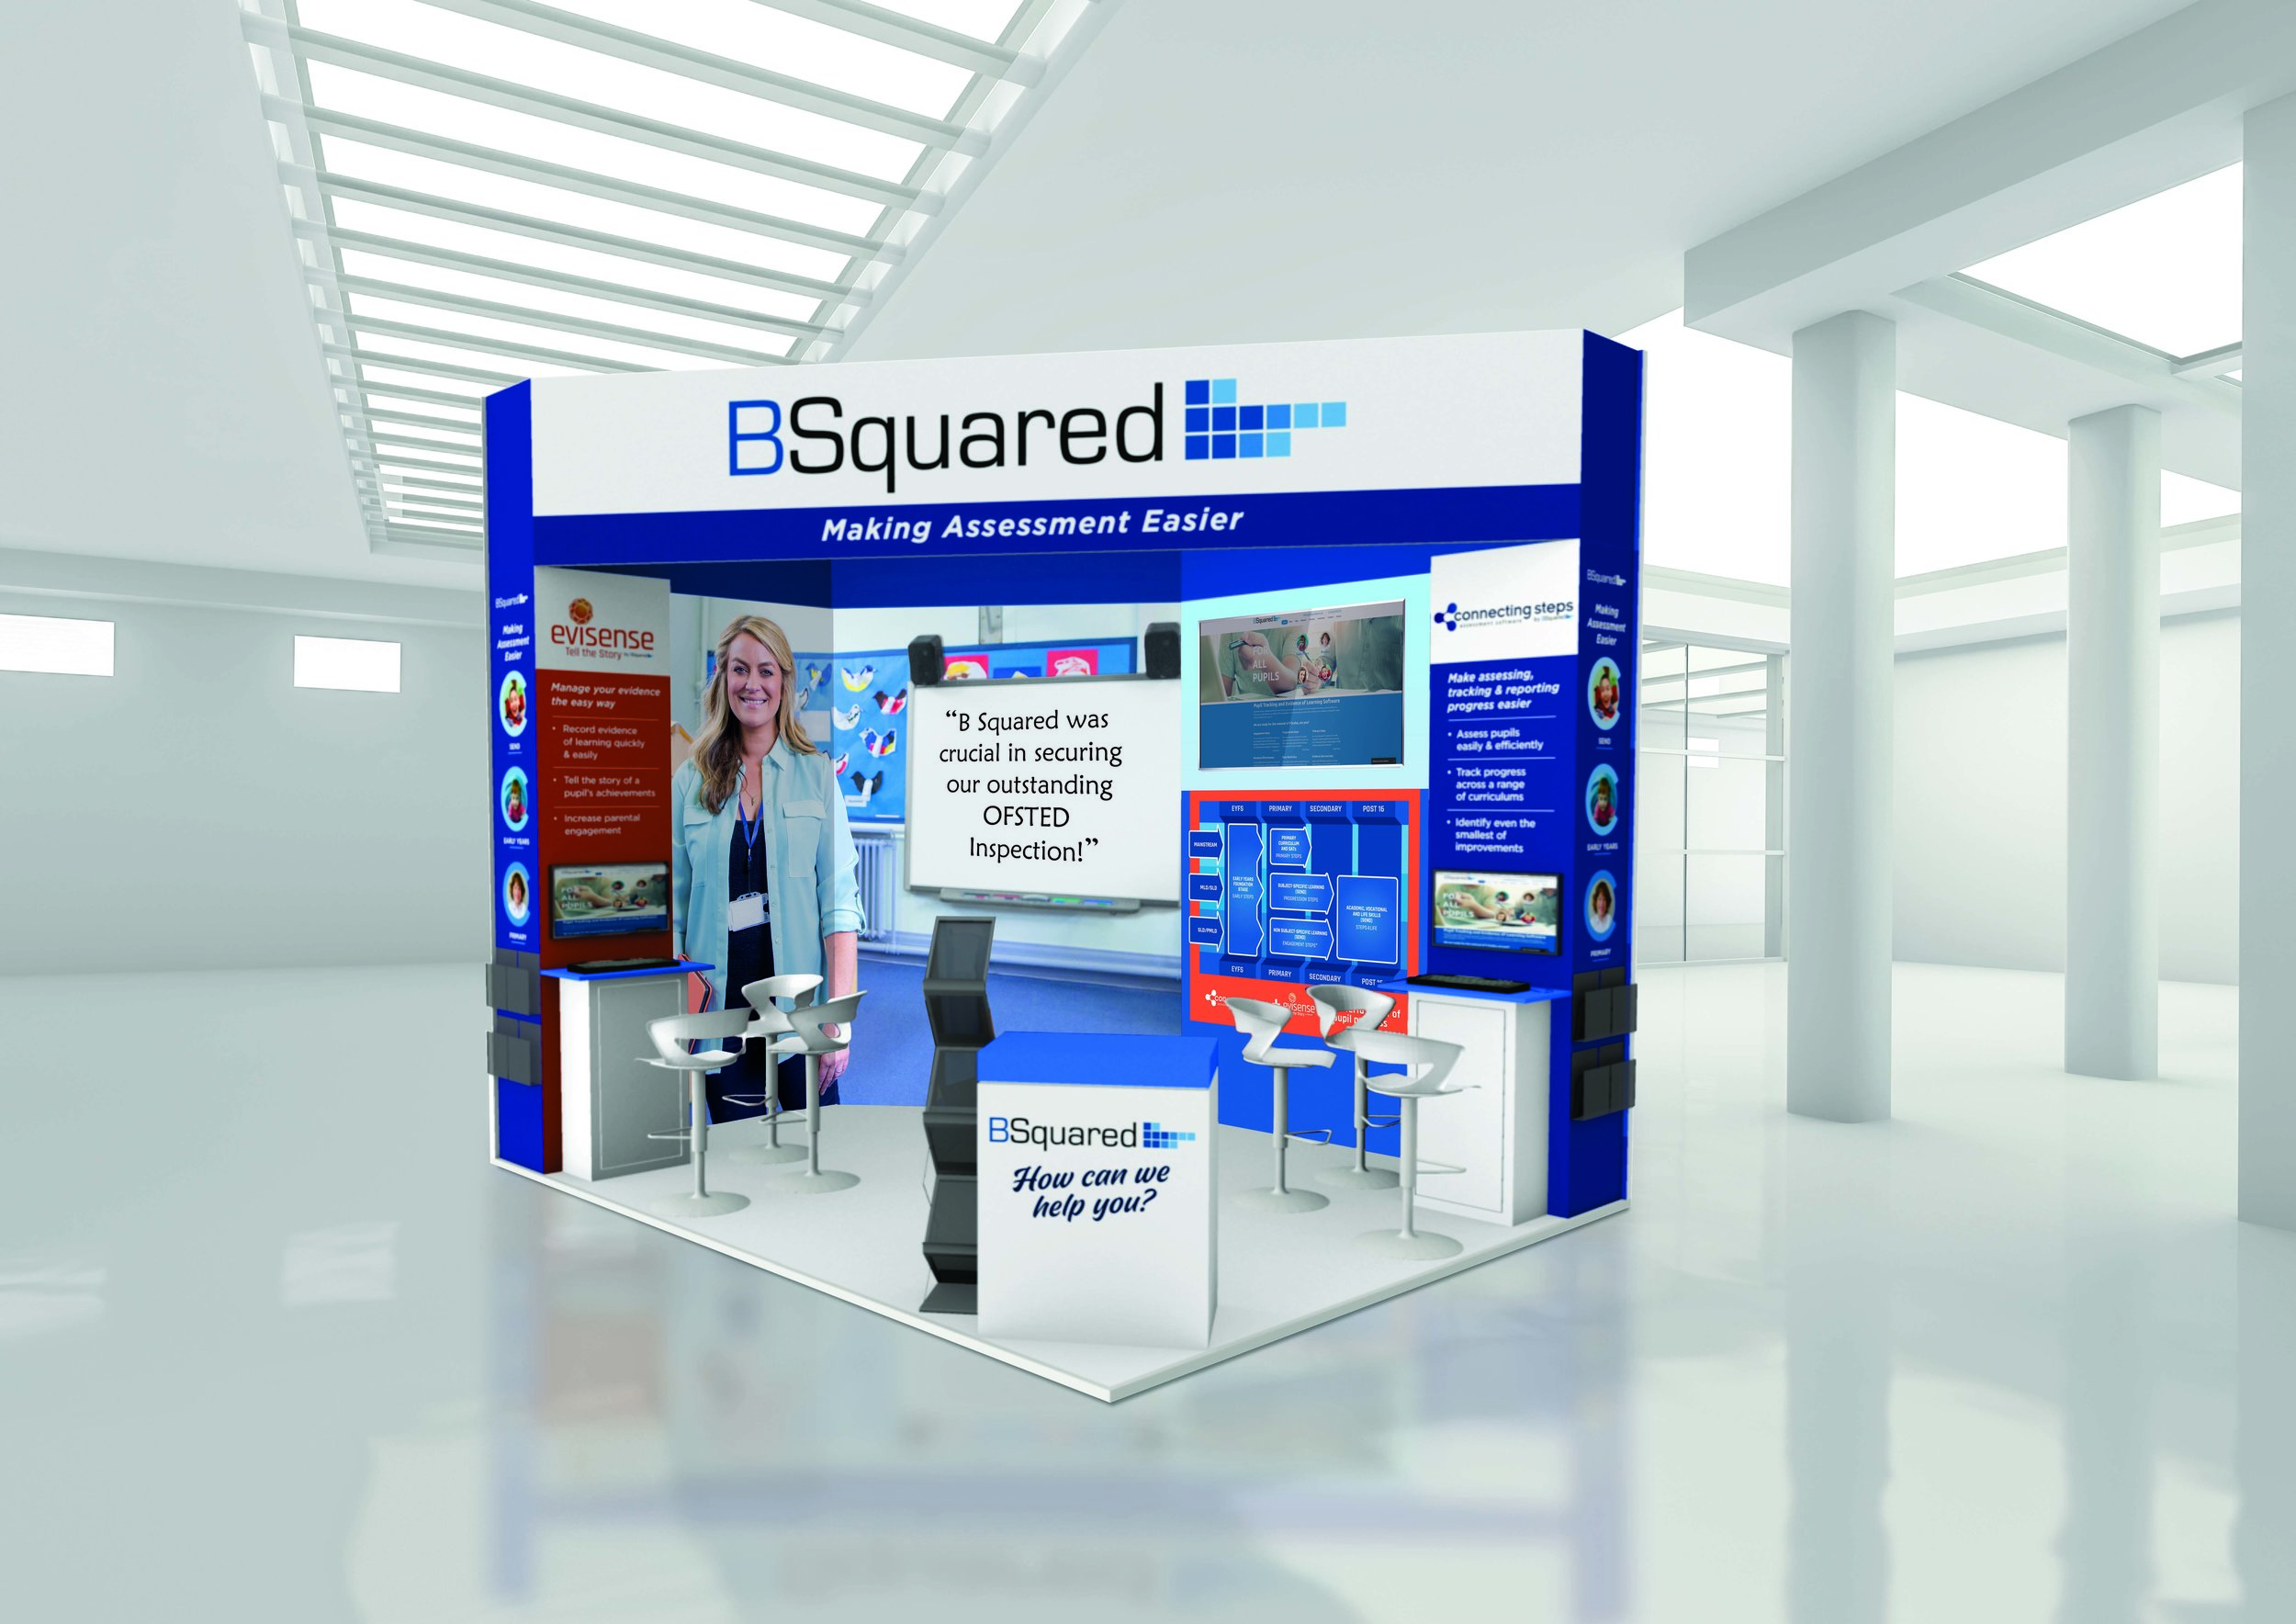 BSquared stand design for an exhibition in 2019